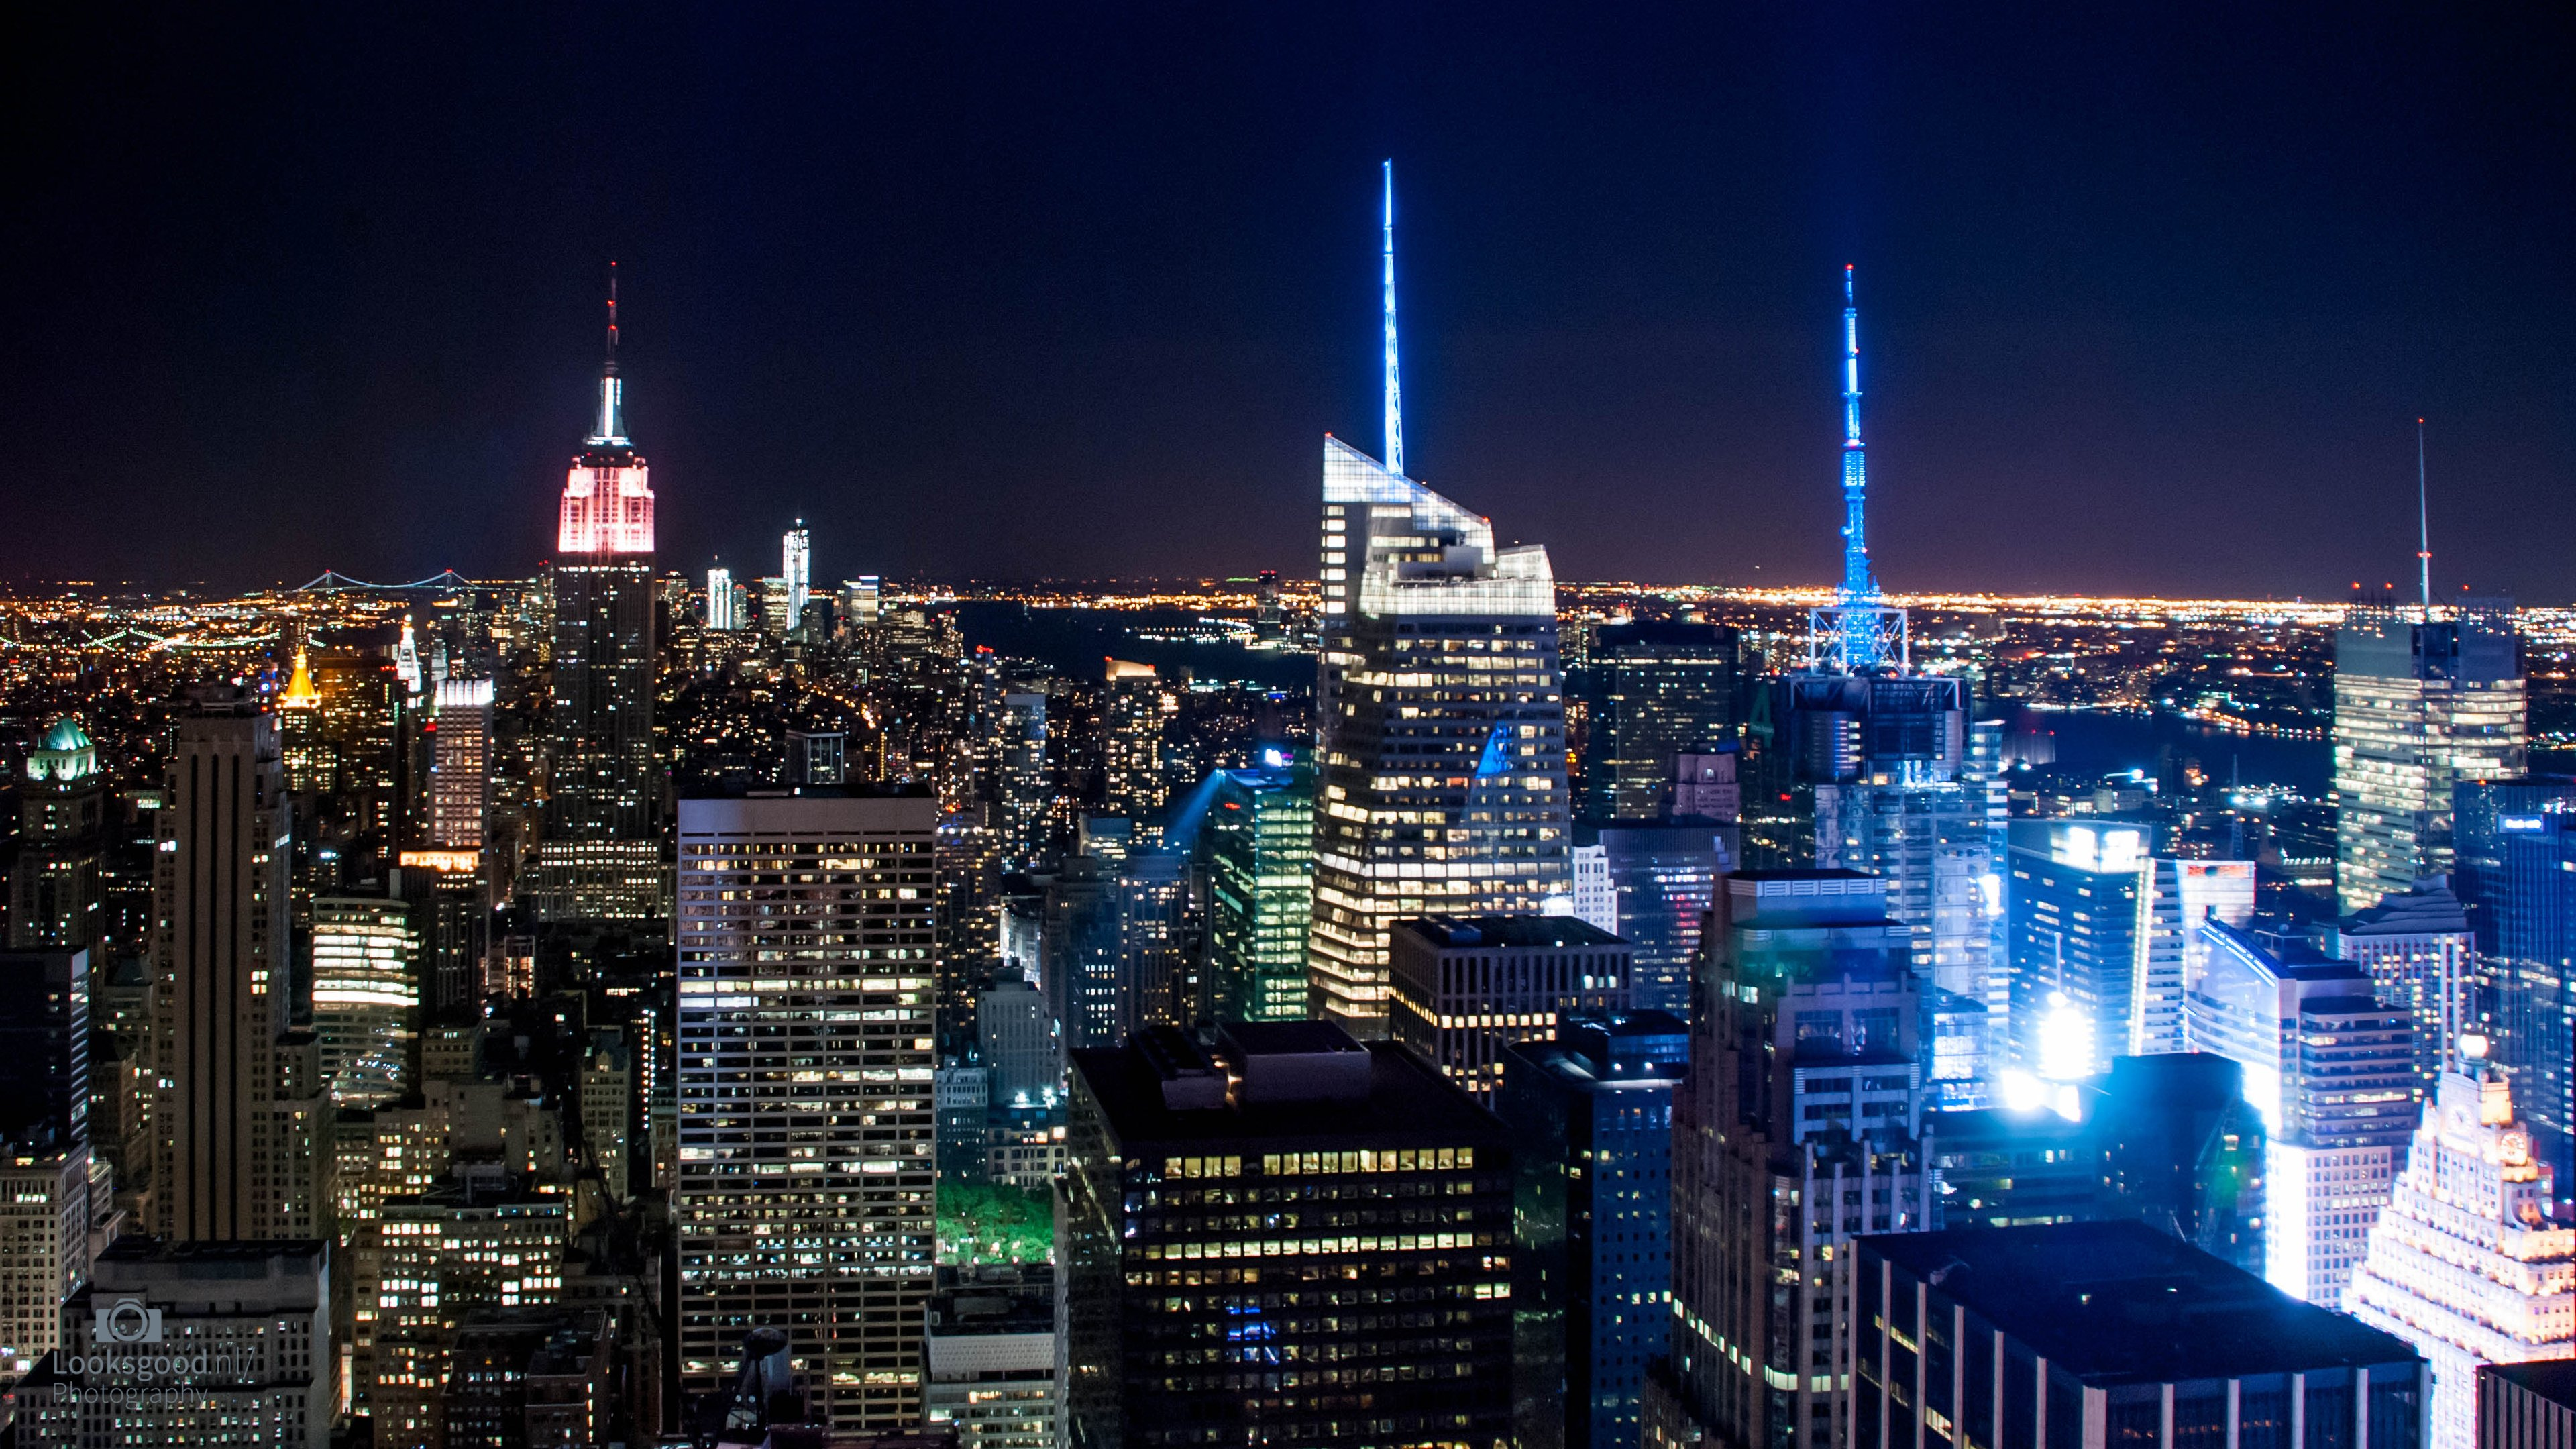 New York Skyline at night 4K Wallpaper Desktop Background Flickr 3840x2160